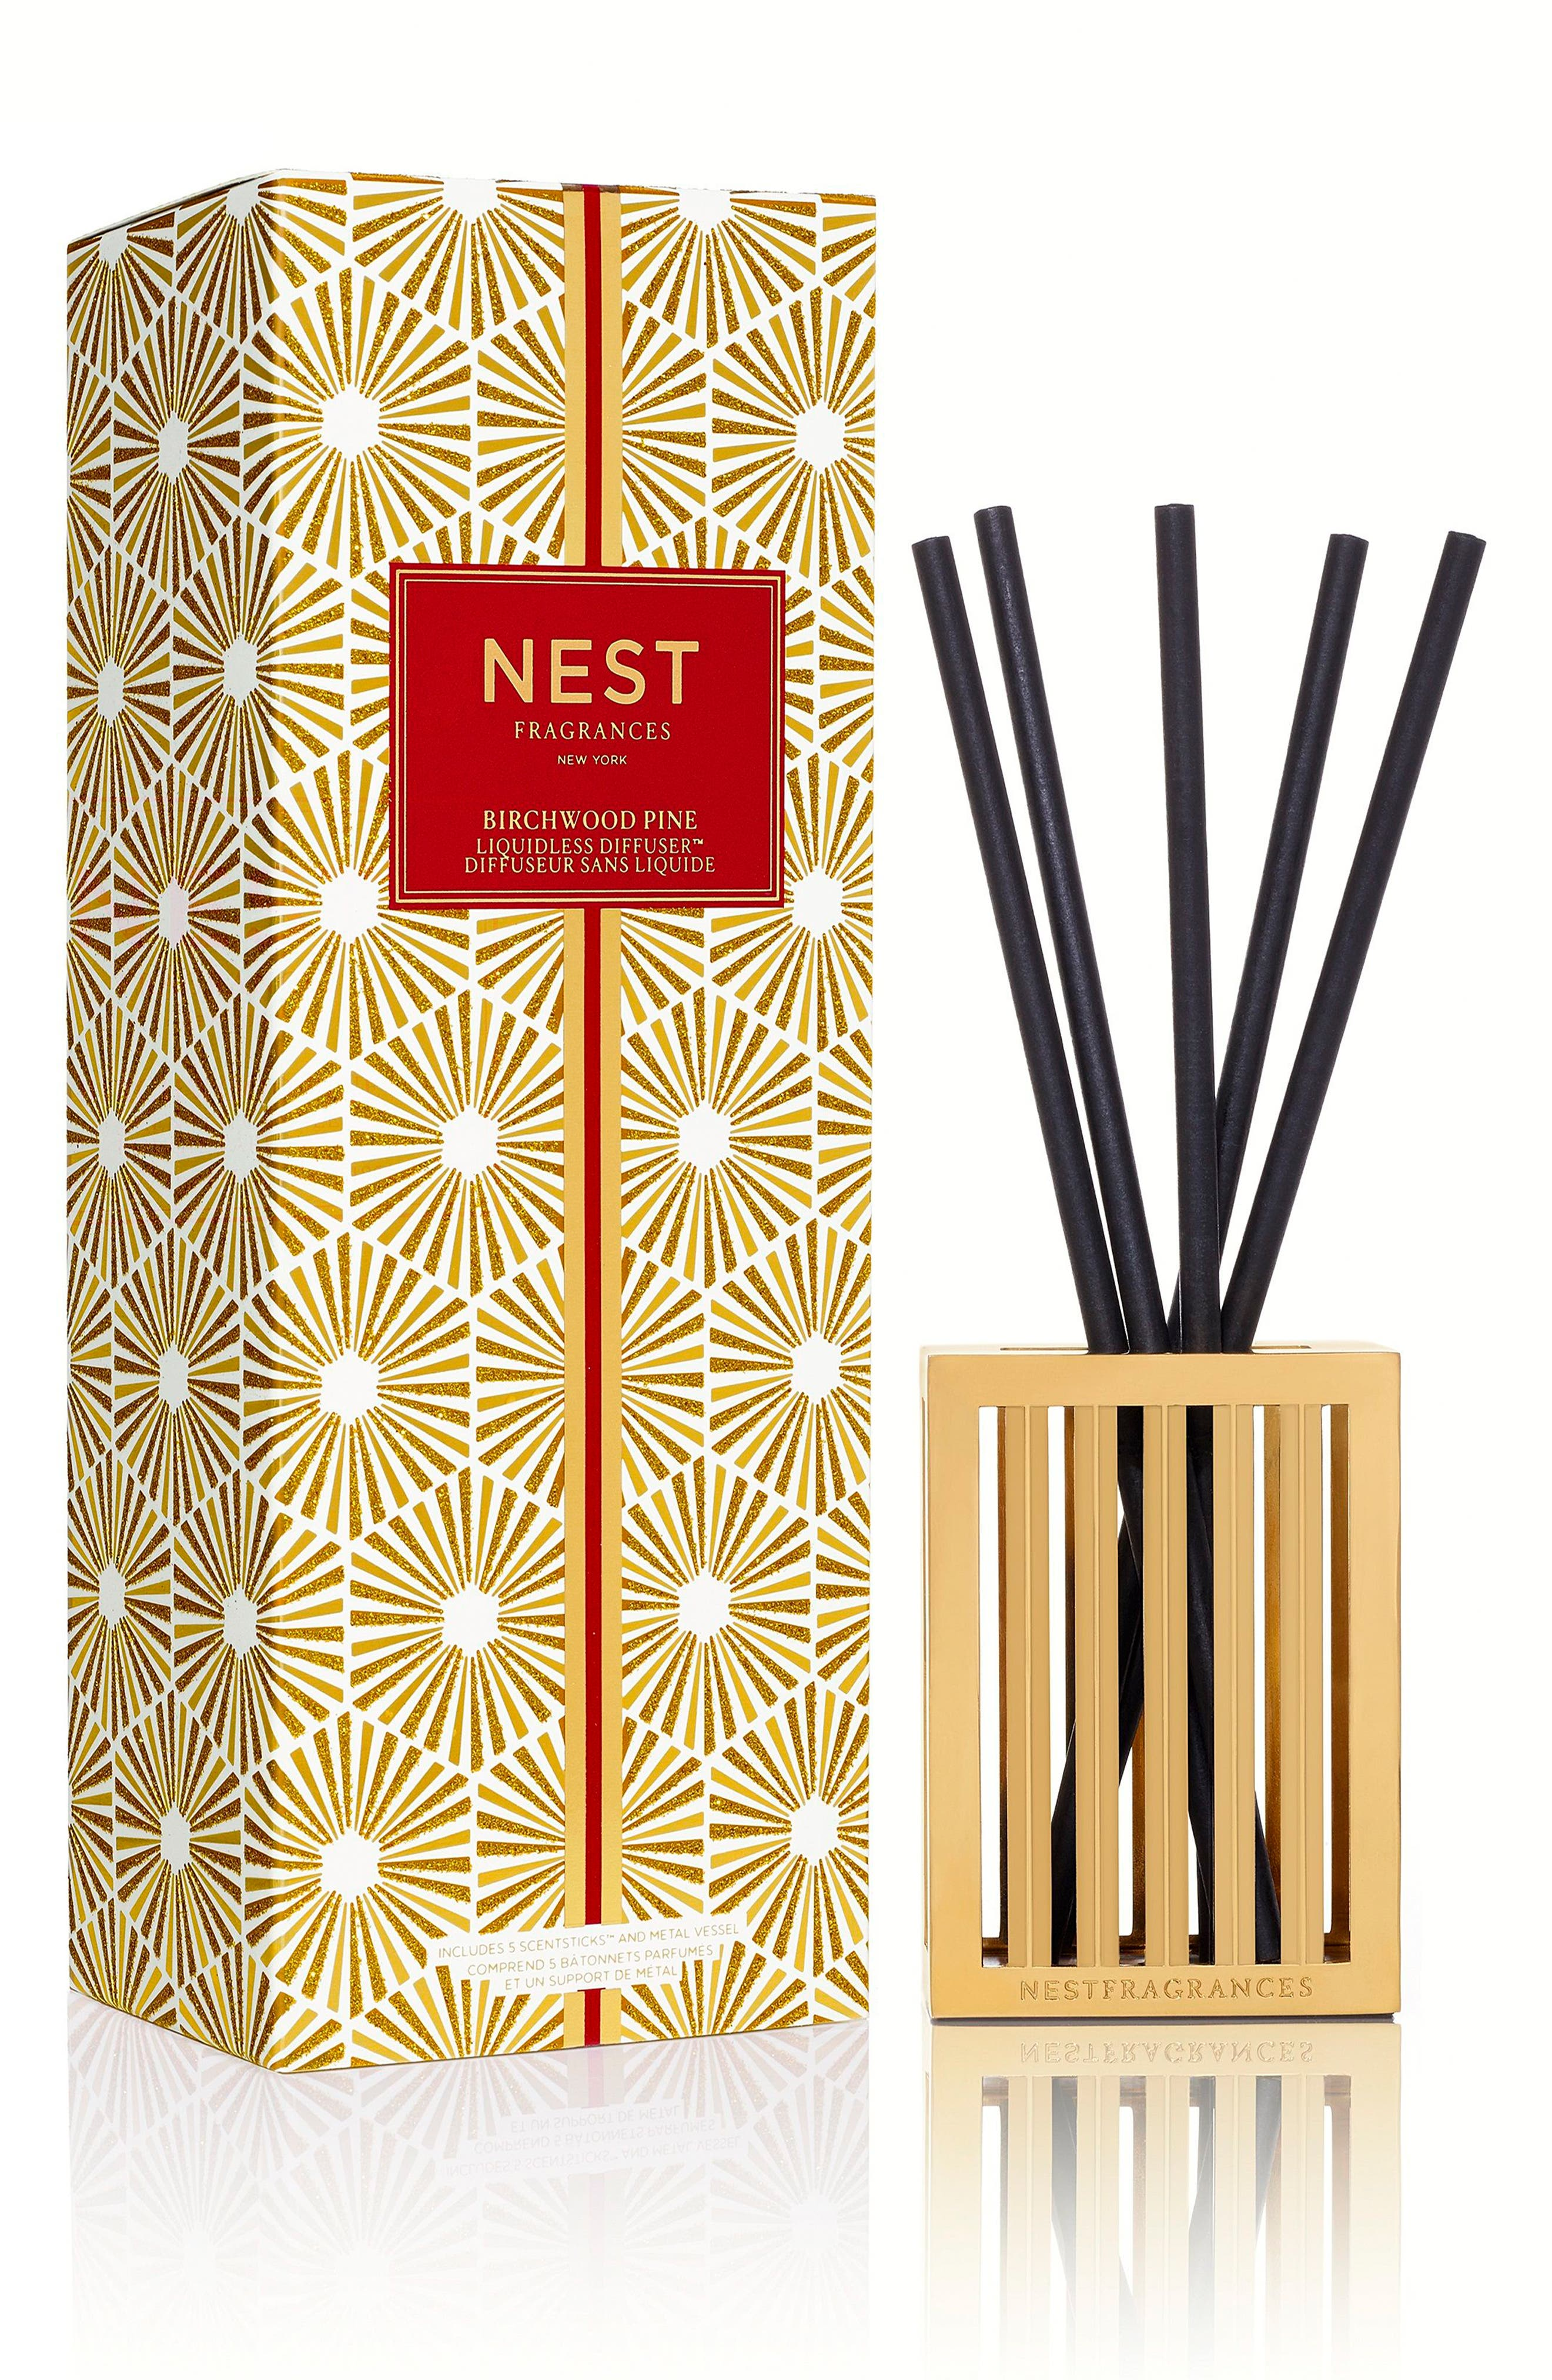 Alternate Image 1 Selected - NEST Fragrances Birchwood Pine Liquidless Diffuser